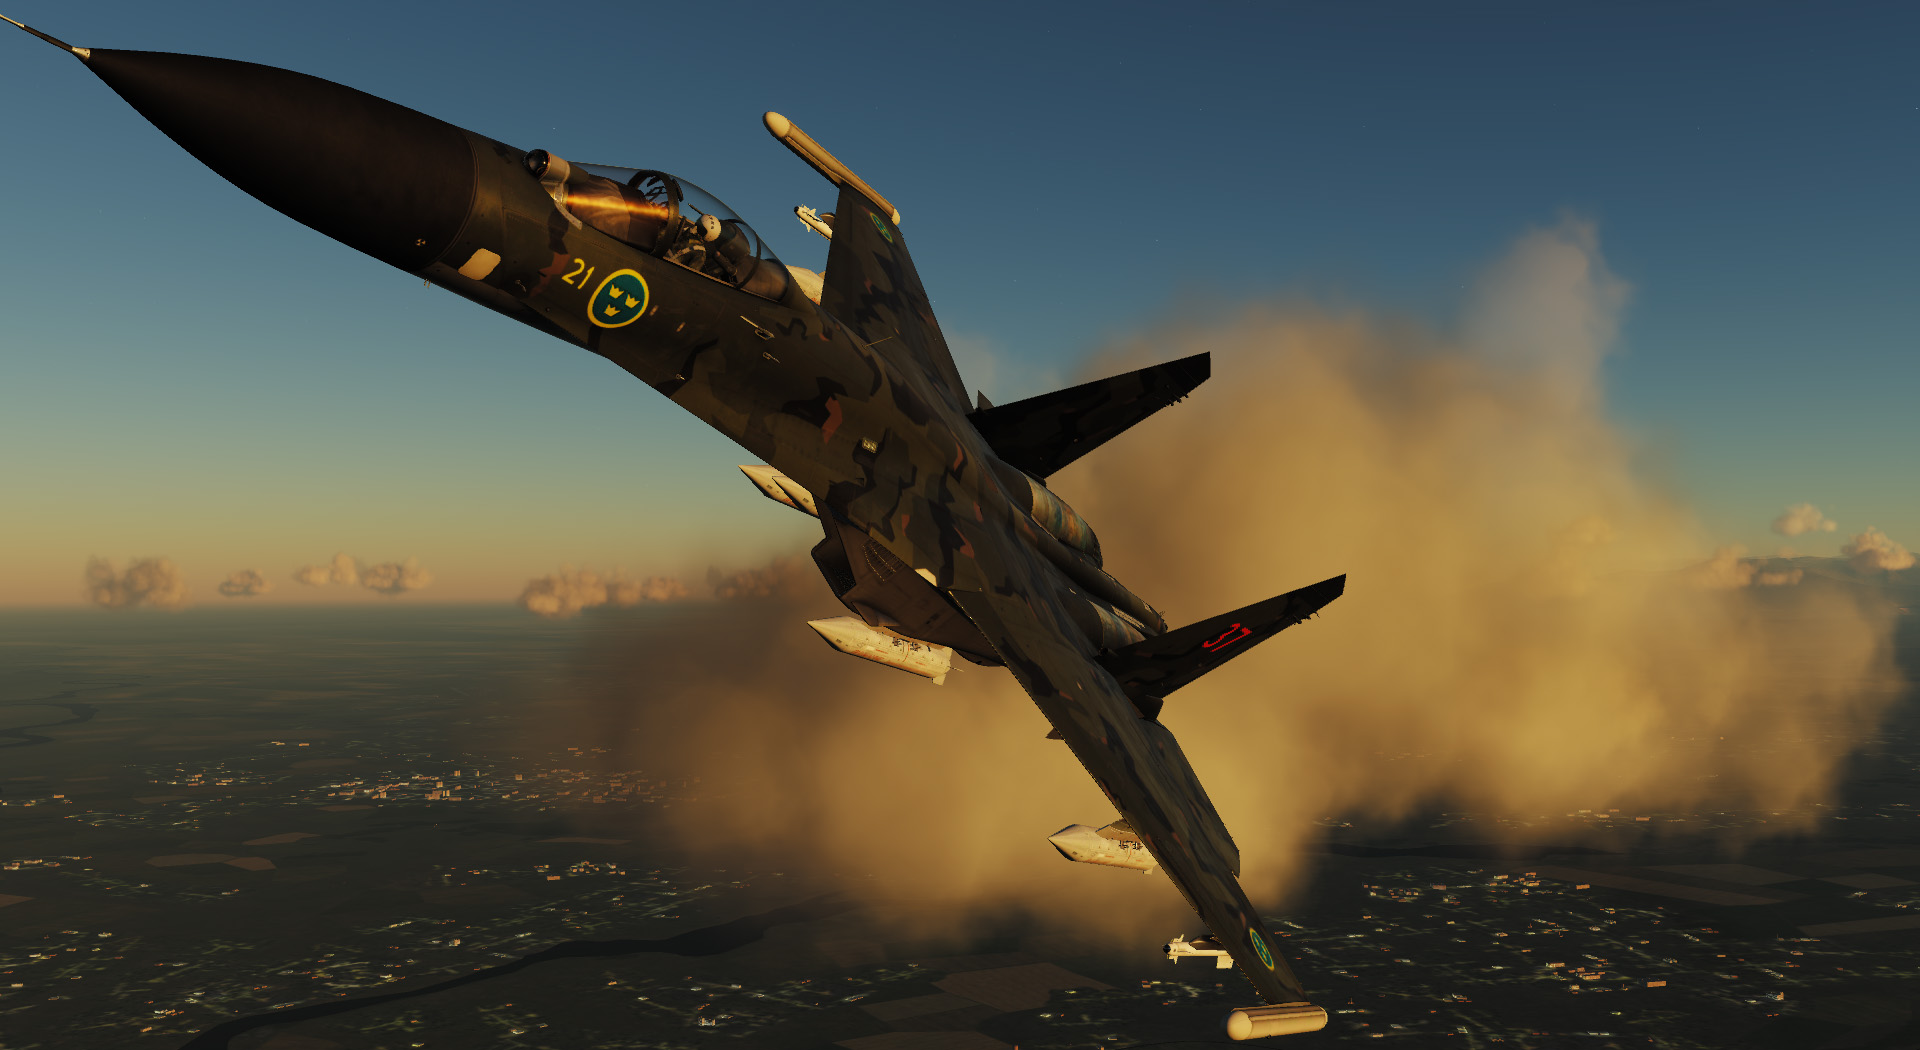 Su-27: Swedish AF (Fictional)